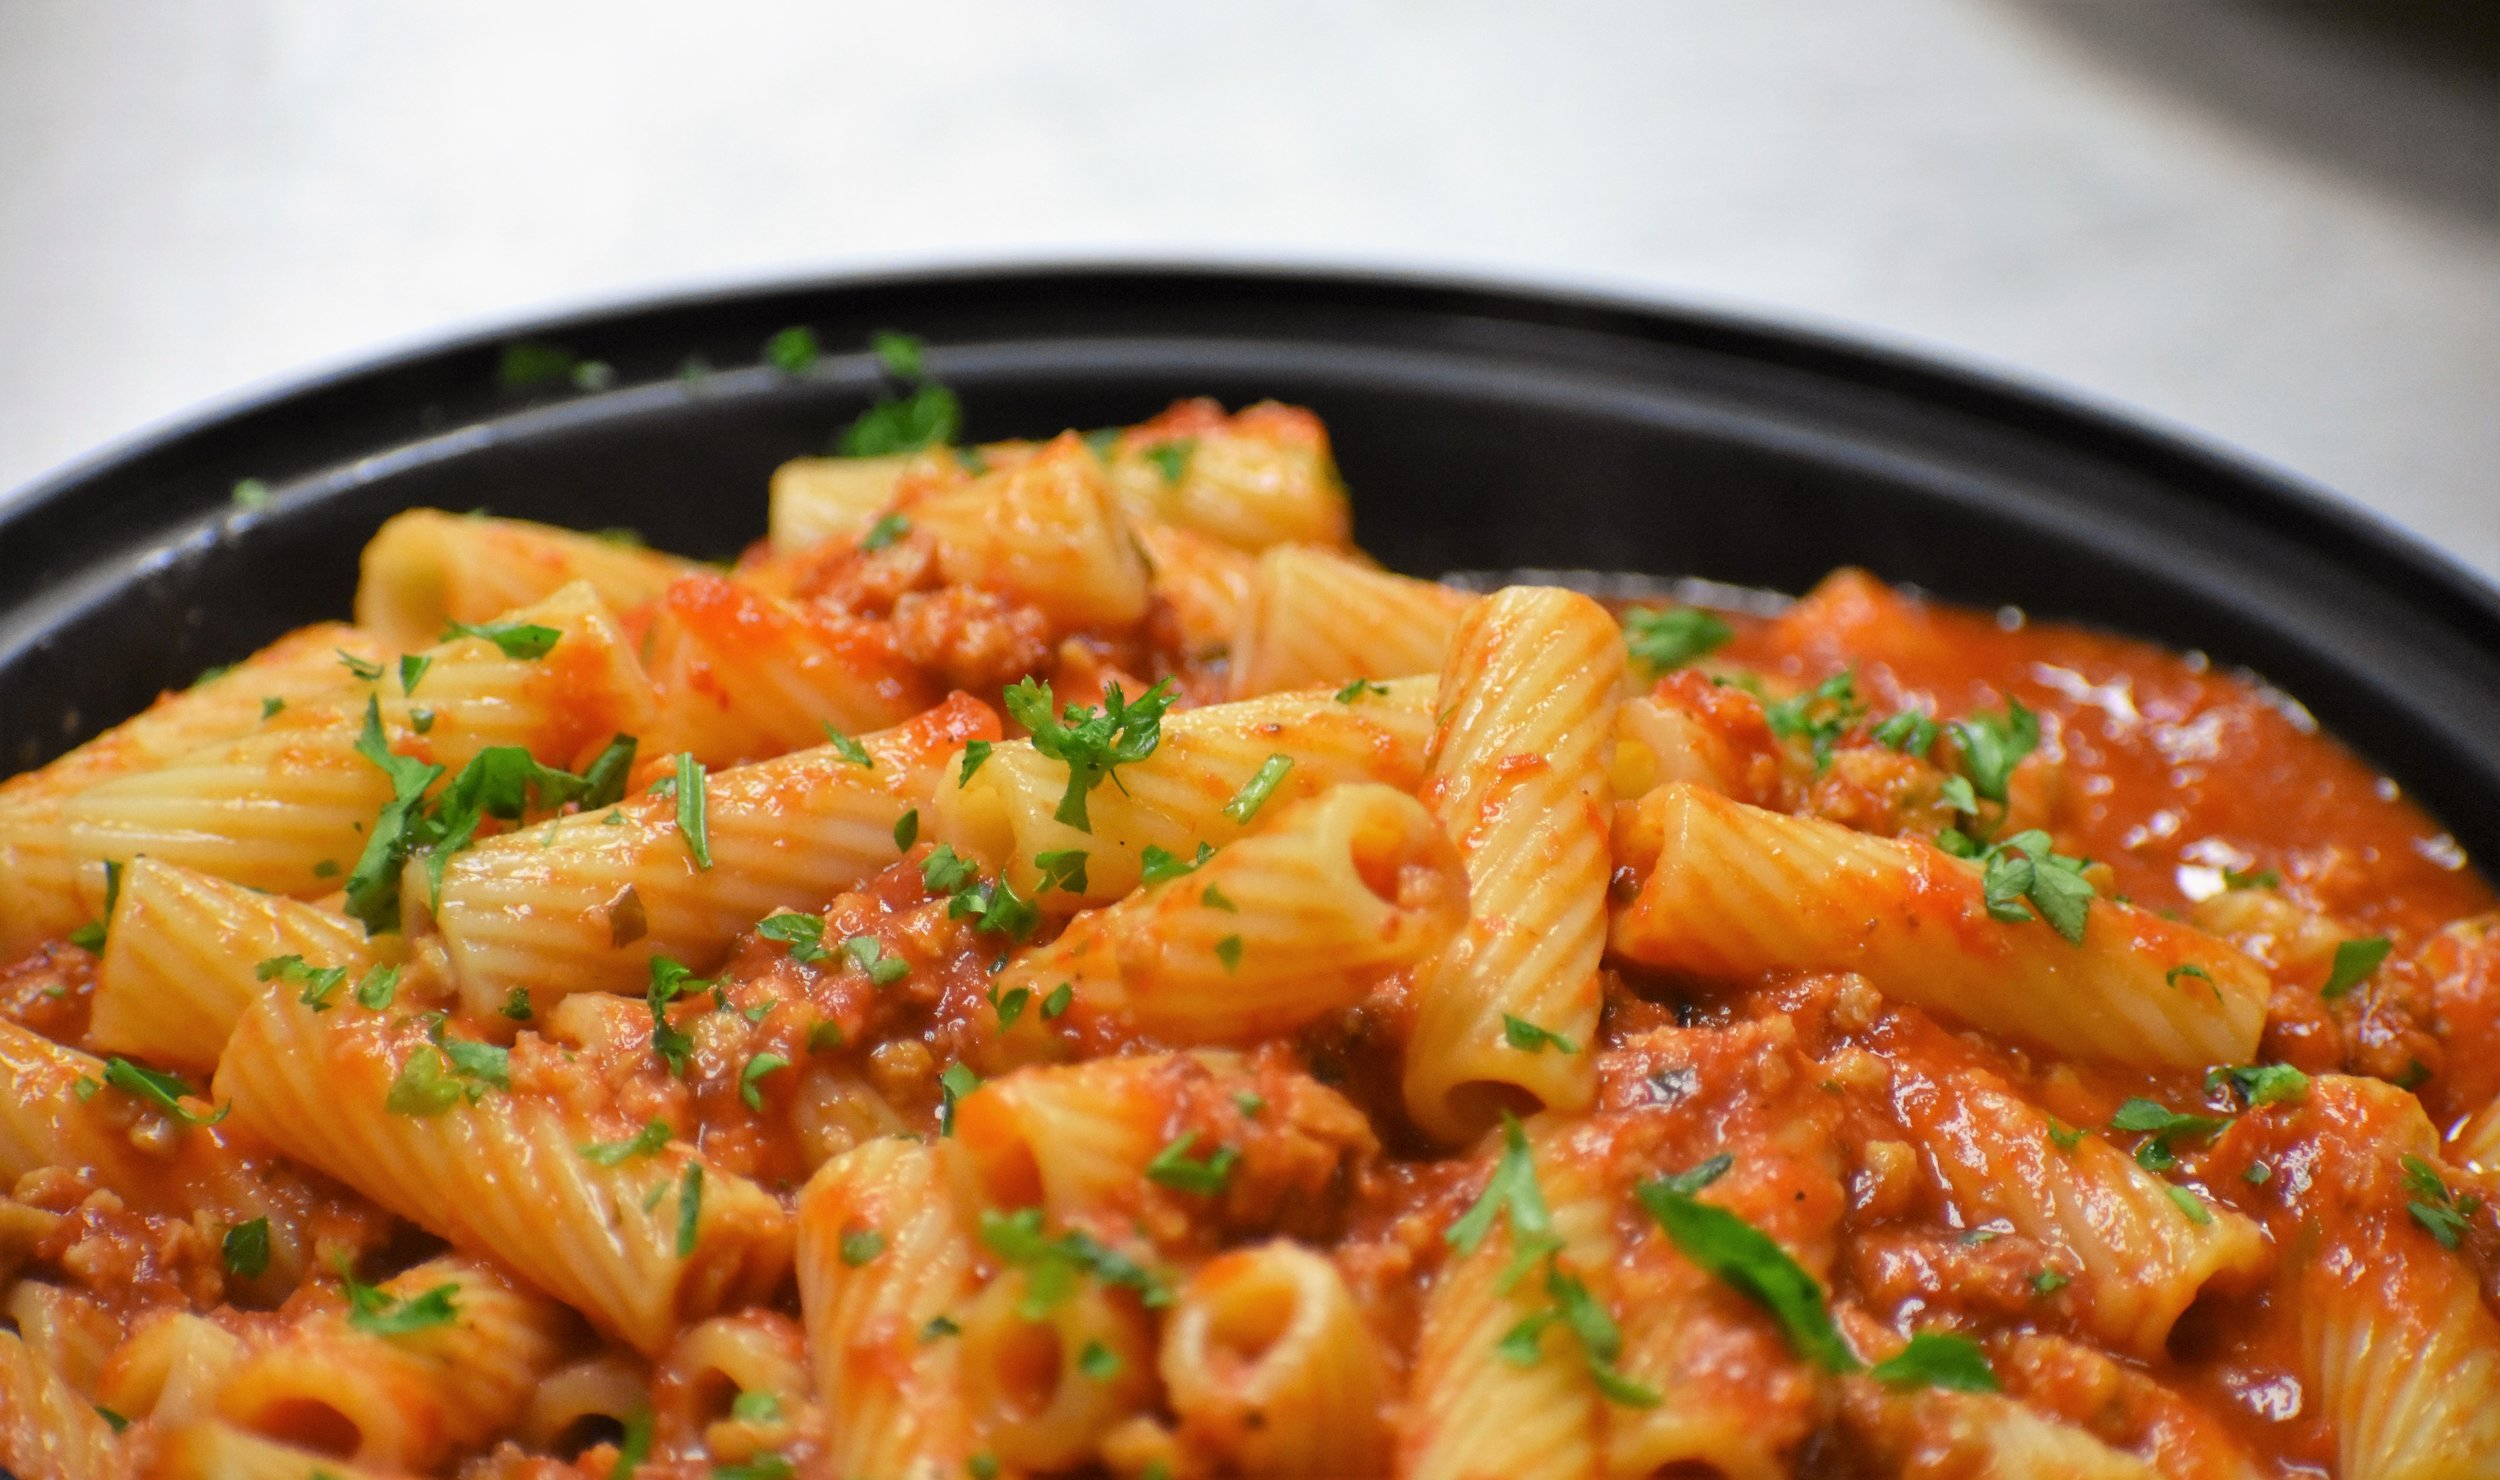 FEATURED ENTREE: RIGATONI WITH MEAT SAUCE